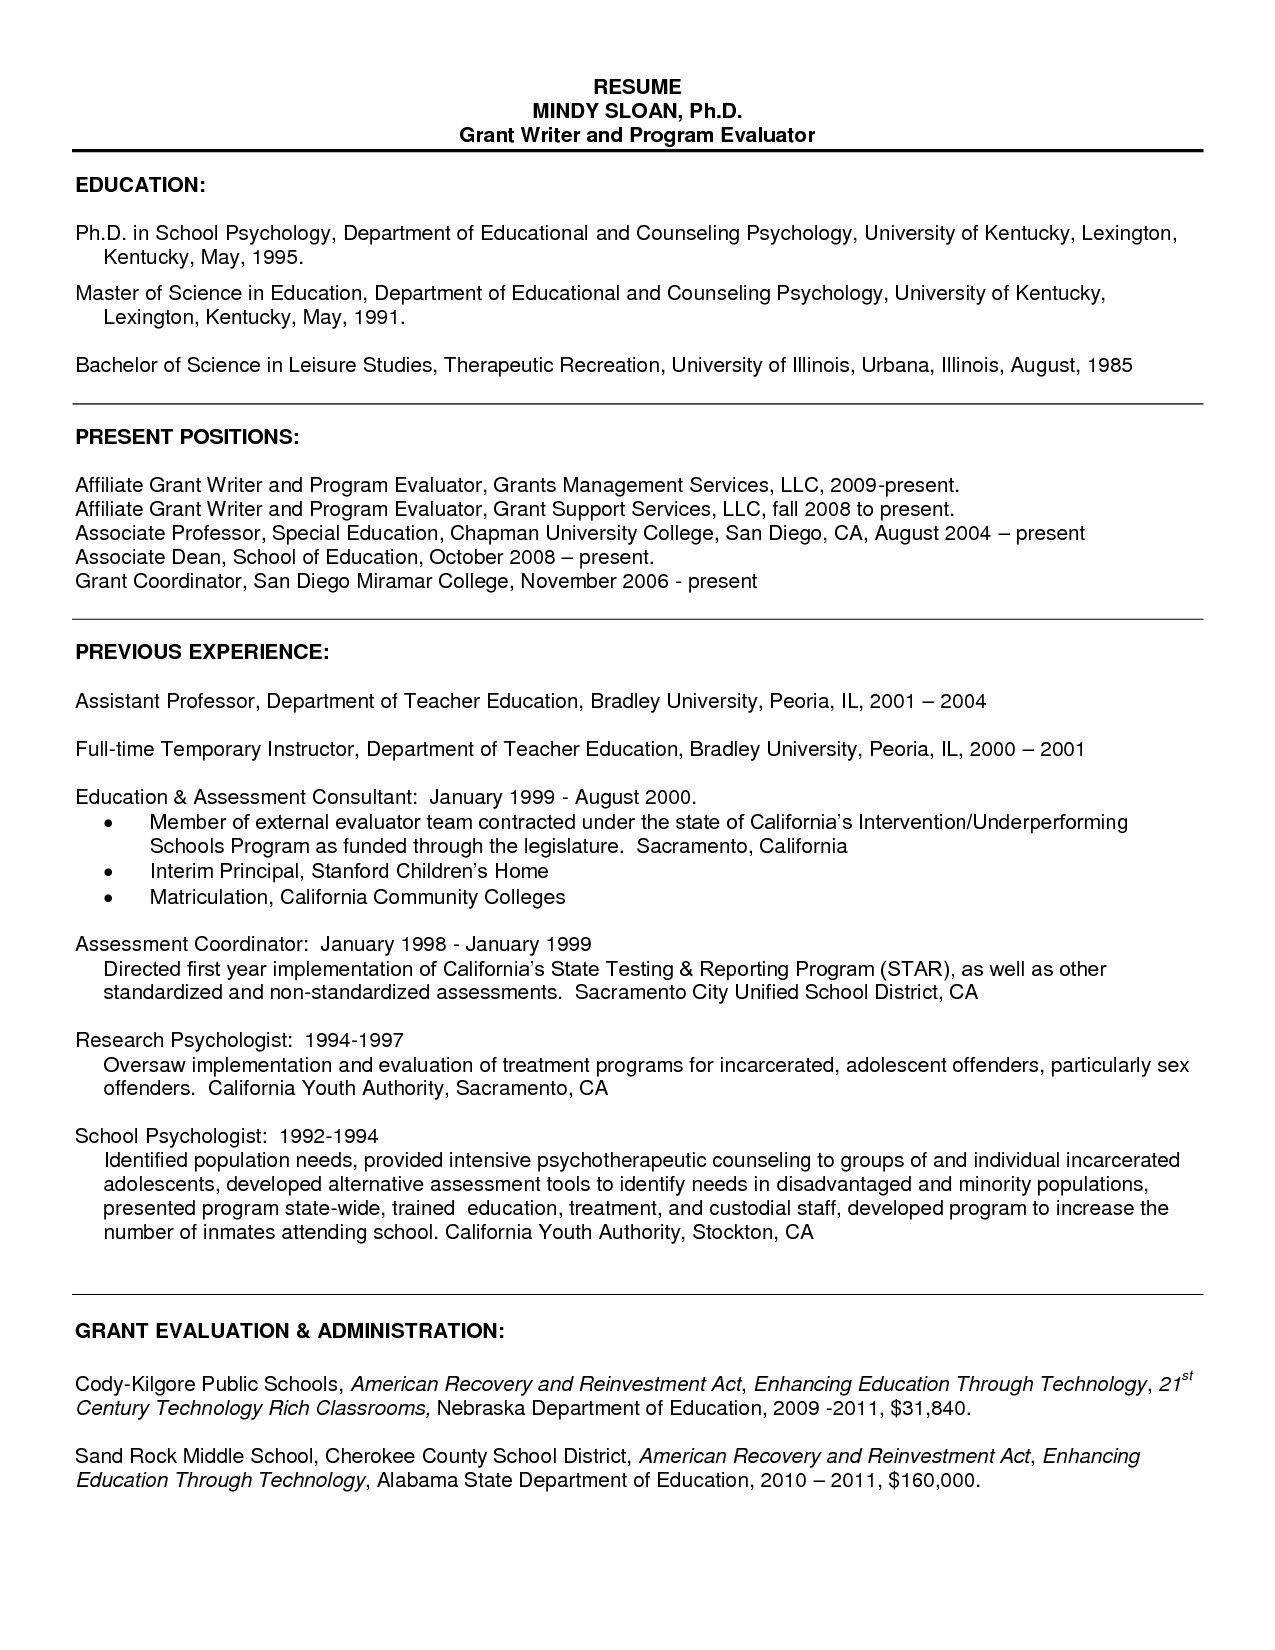 Job Resume Samples